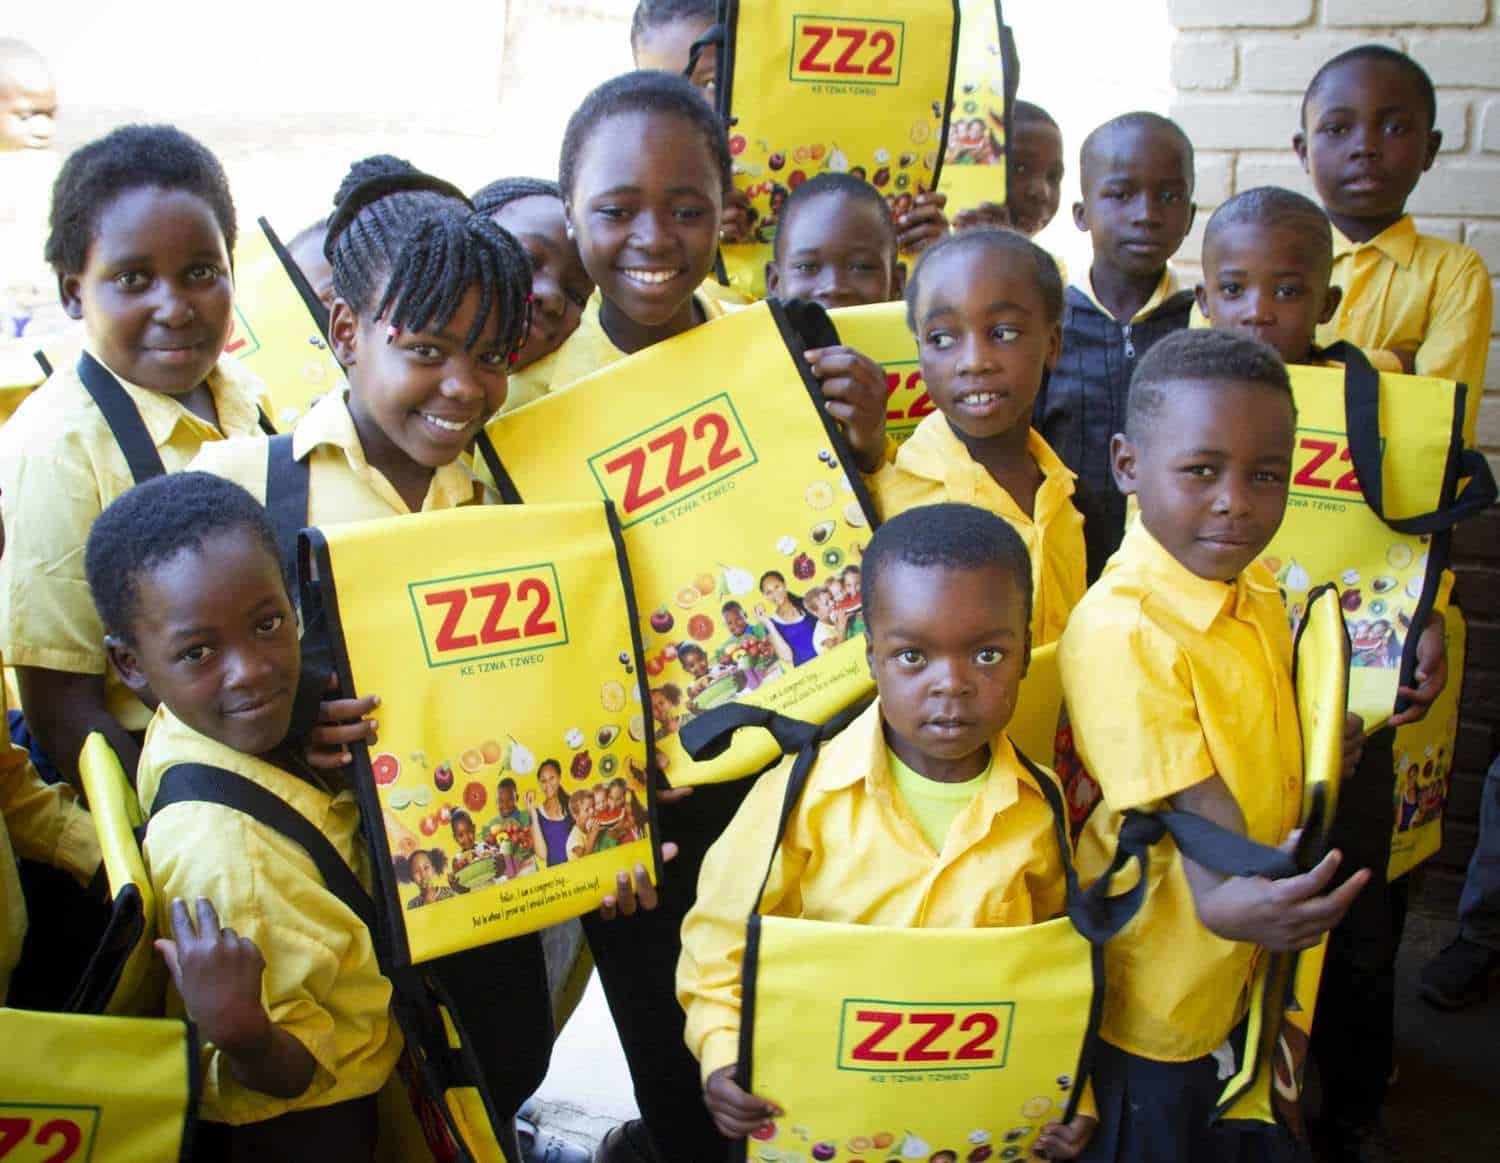 Learners from ZZ2 Primary School in Mooketsi, Limpopo boasting with their brand-new school bags made from recycled billboards.